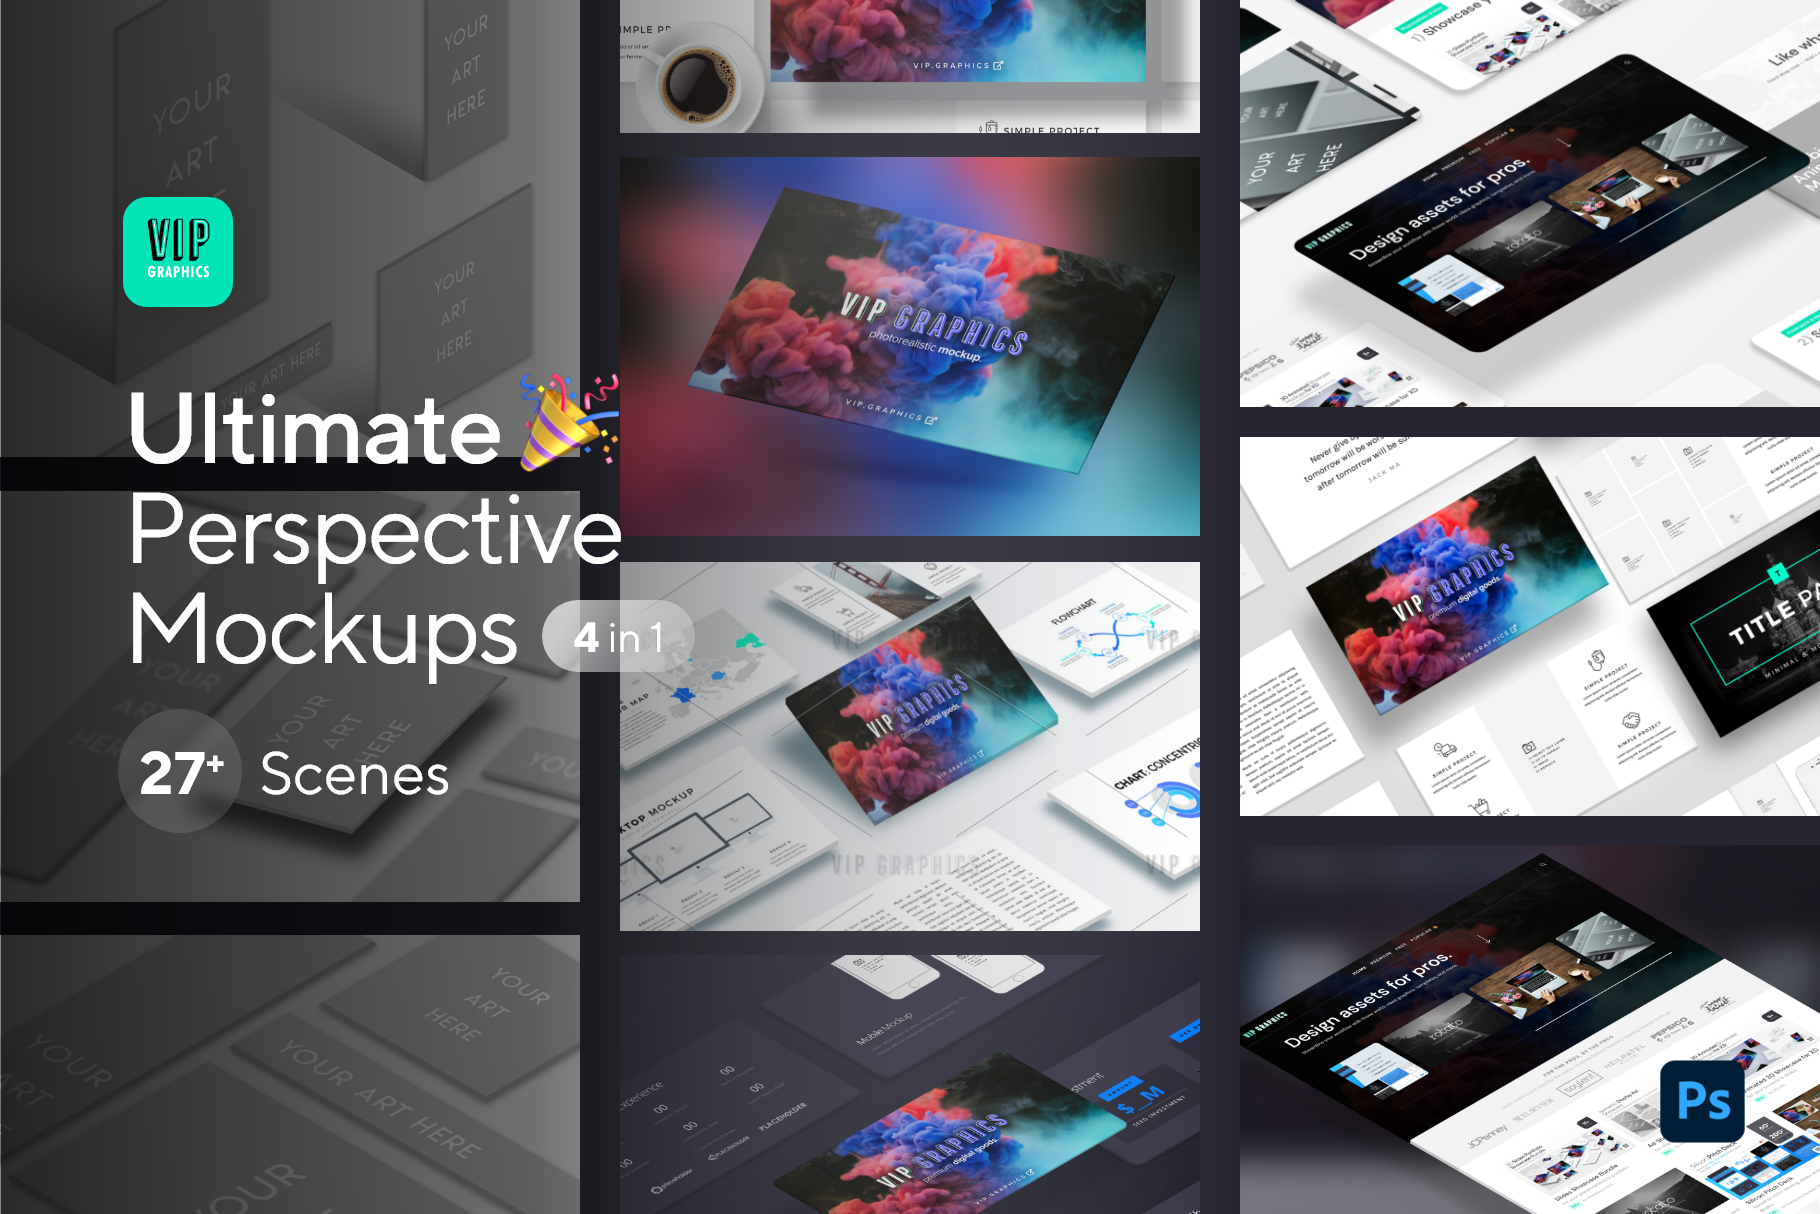 Ultimate Perspective Mockup Bundle PSD: All-in-One Full Shop Bundle (Preview) | VIP.graphics